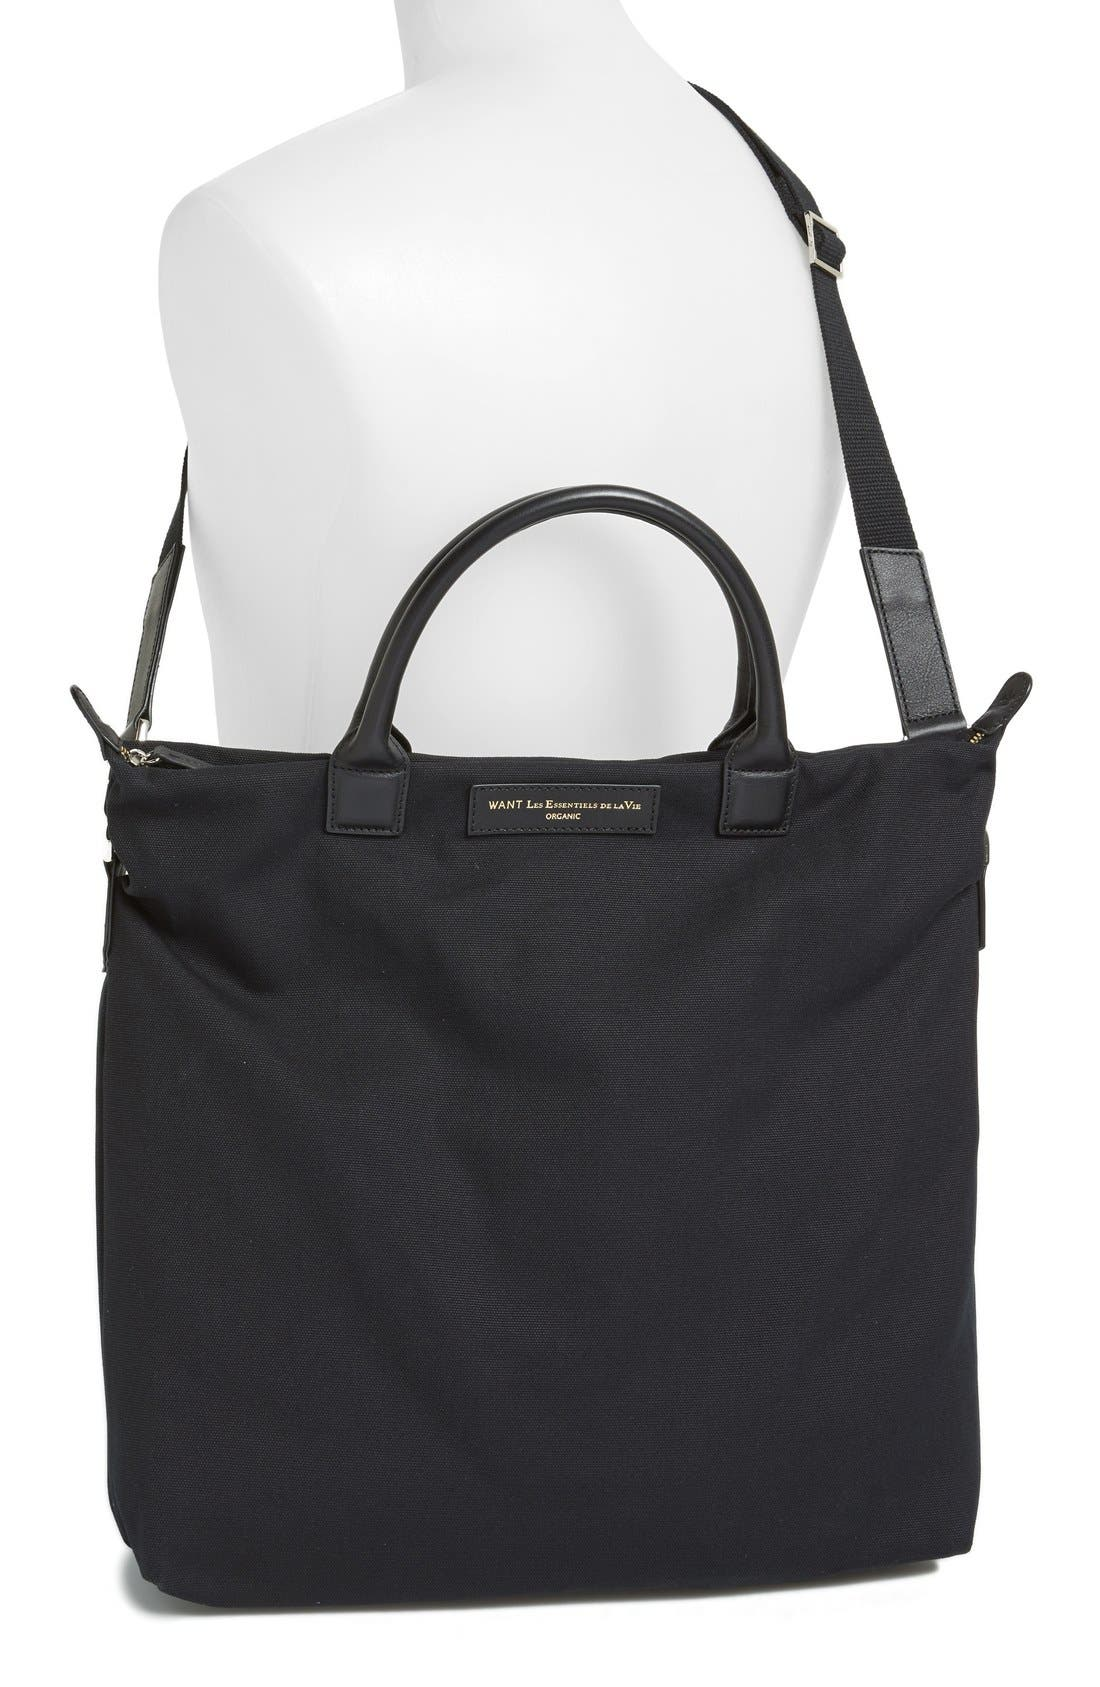 Alternate Image 2  - WANT LES ESSENTIELS 'O'Hare' Tote Bag